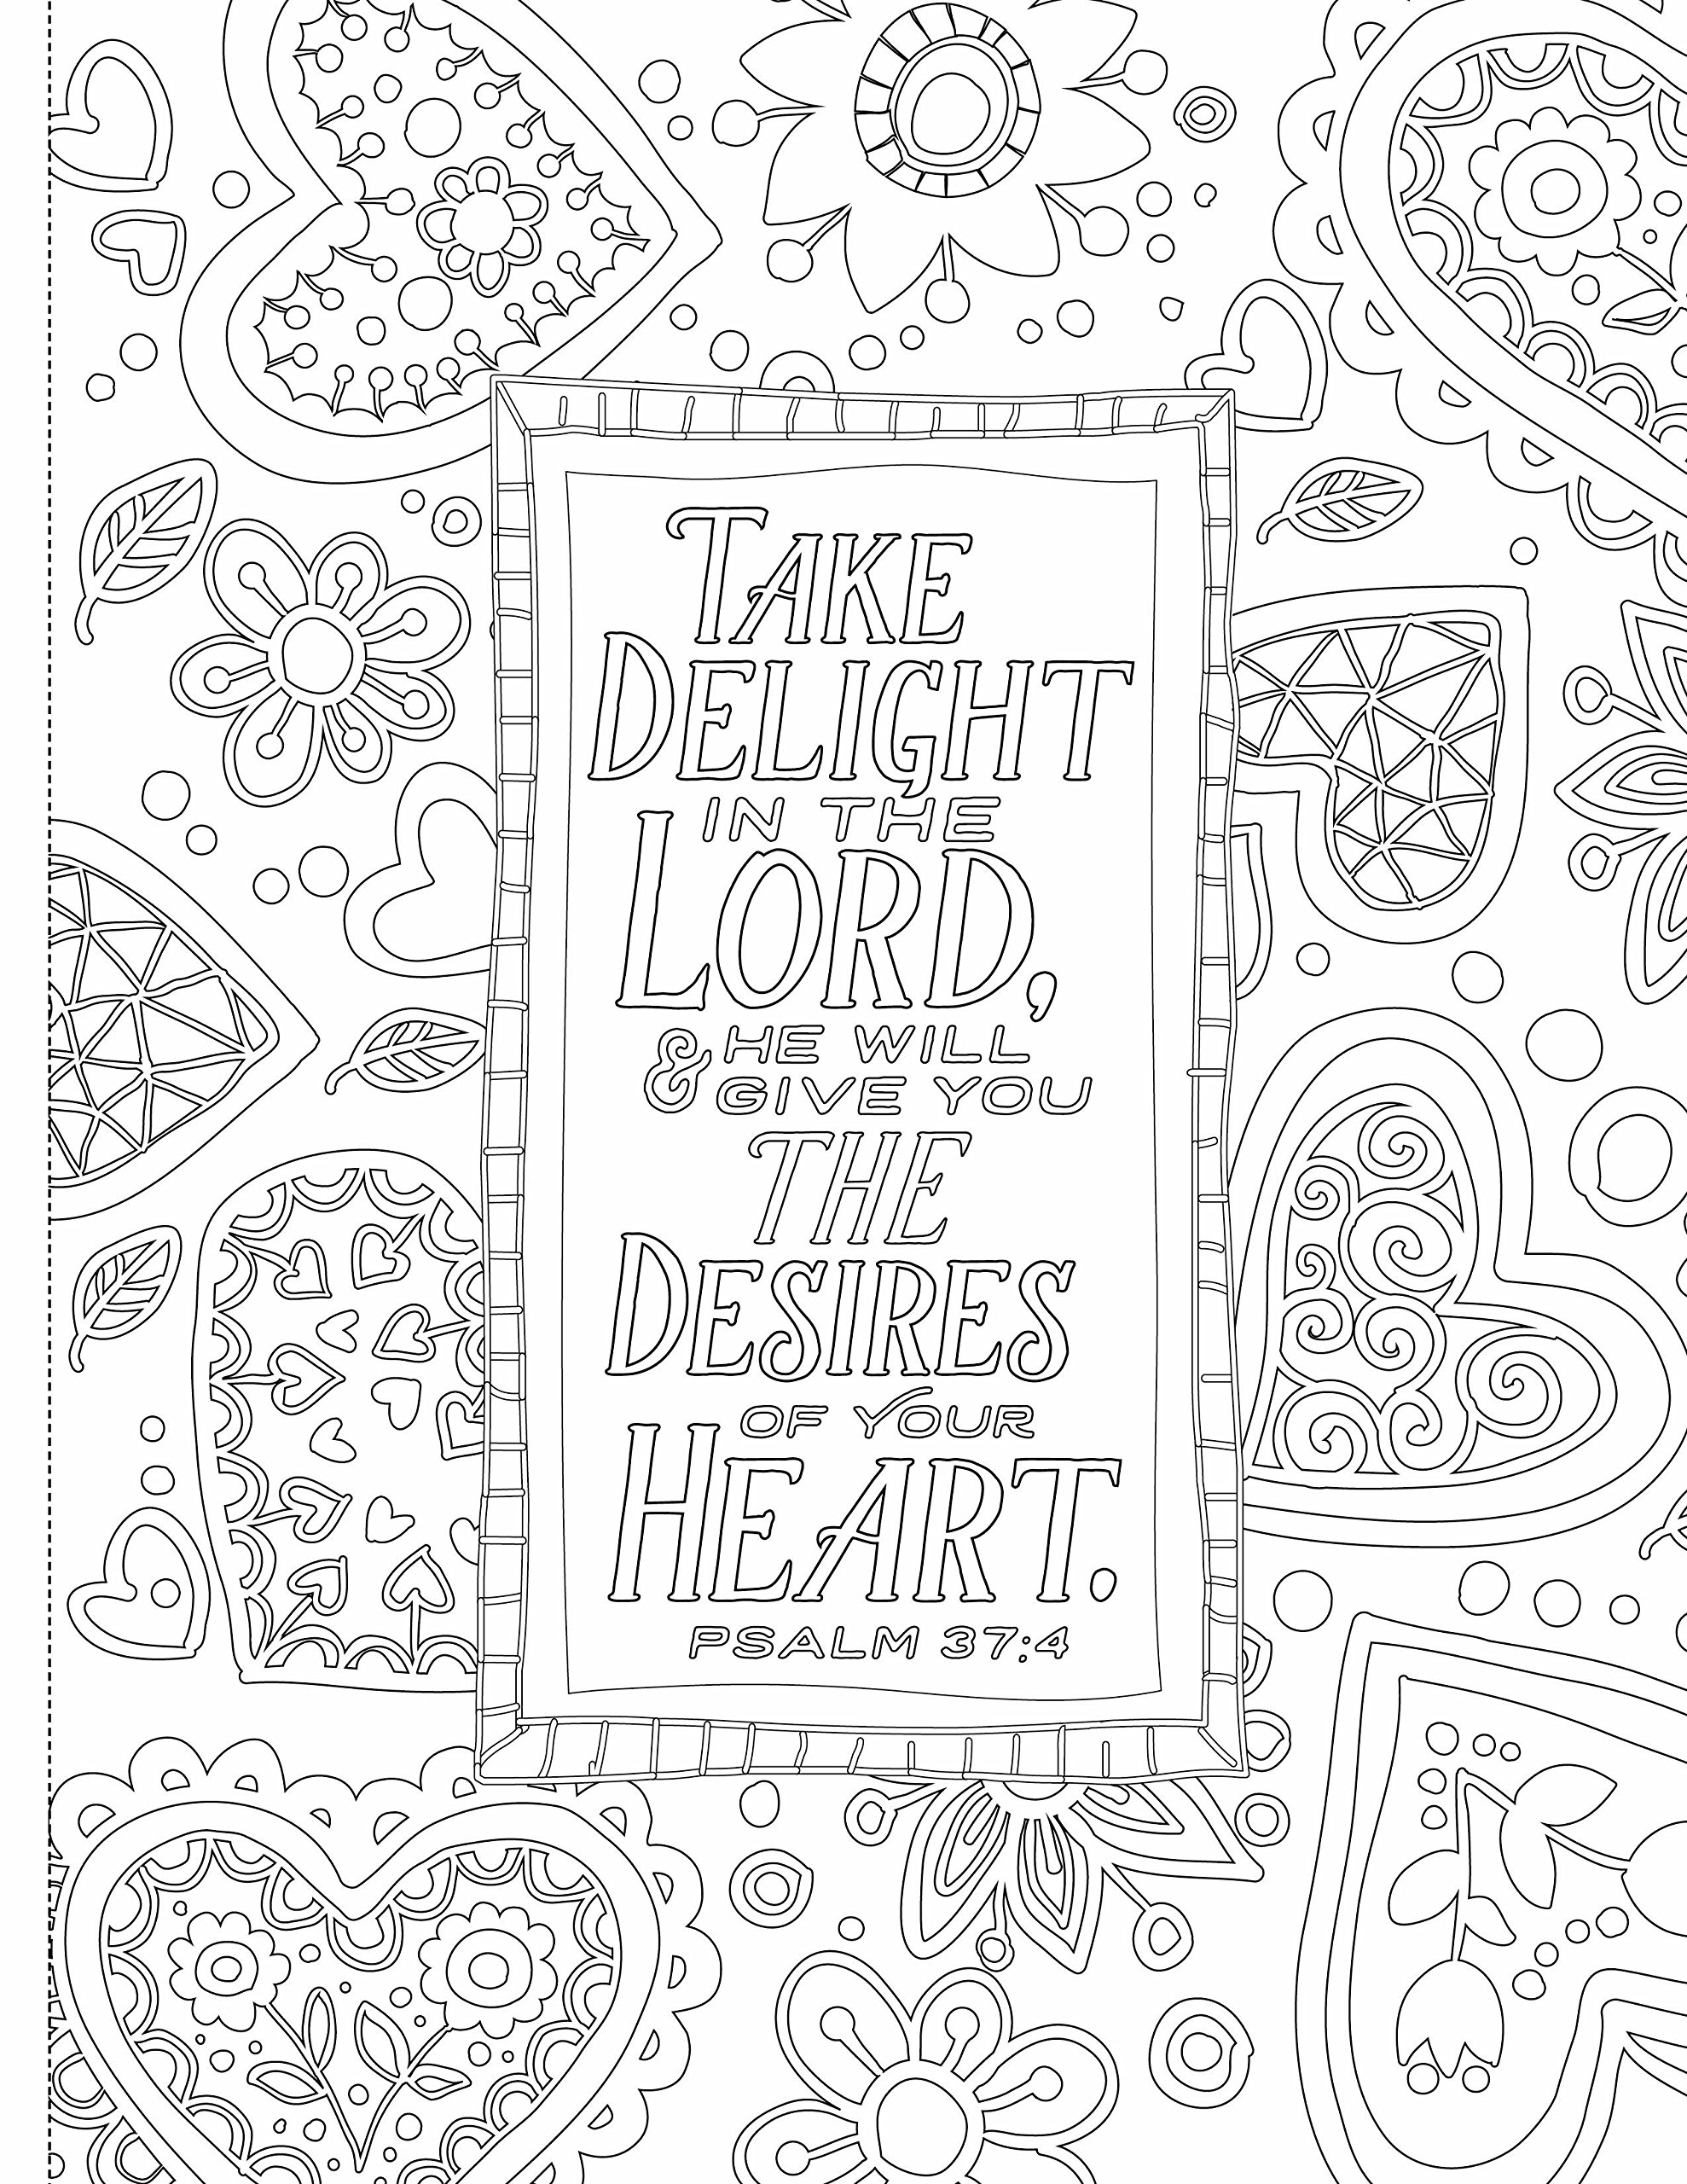 Inspiring Words Coloring Book 30 Verses From The Bible You Can Color Zondervan 9780310757283 Amazon Books